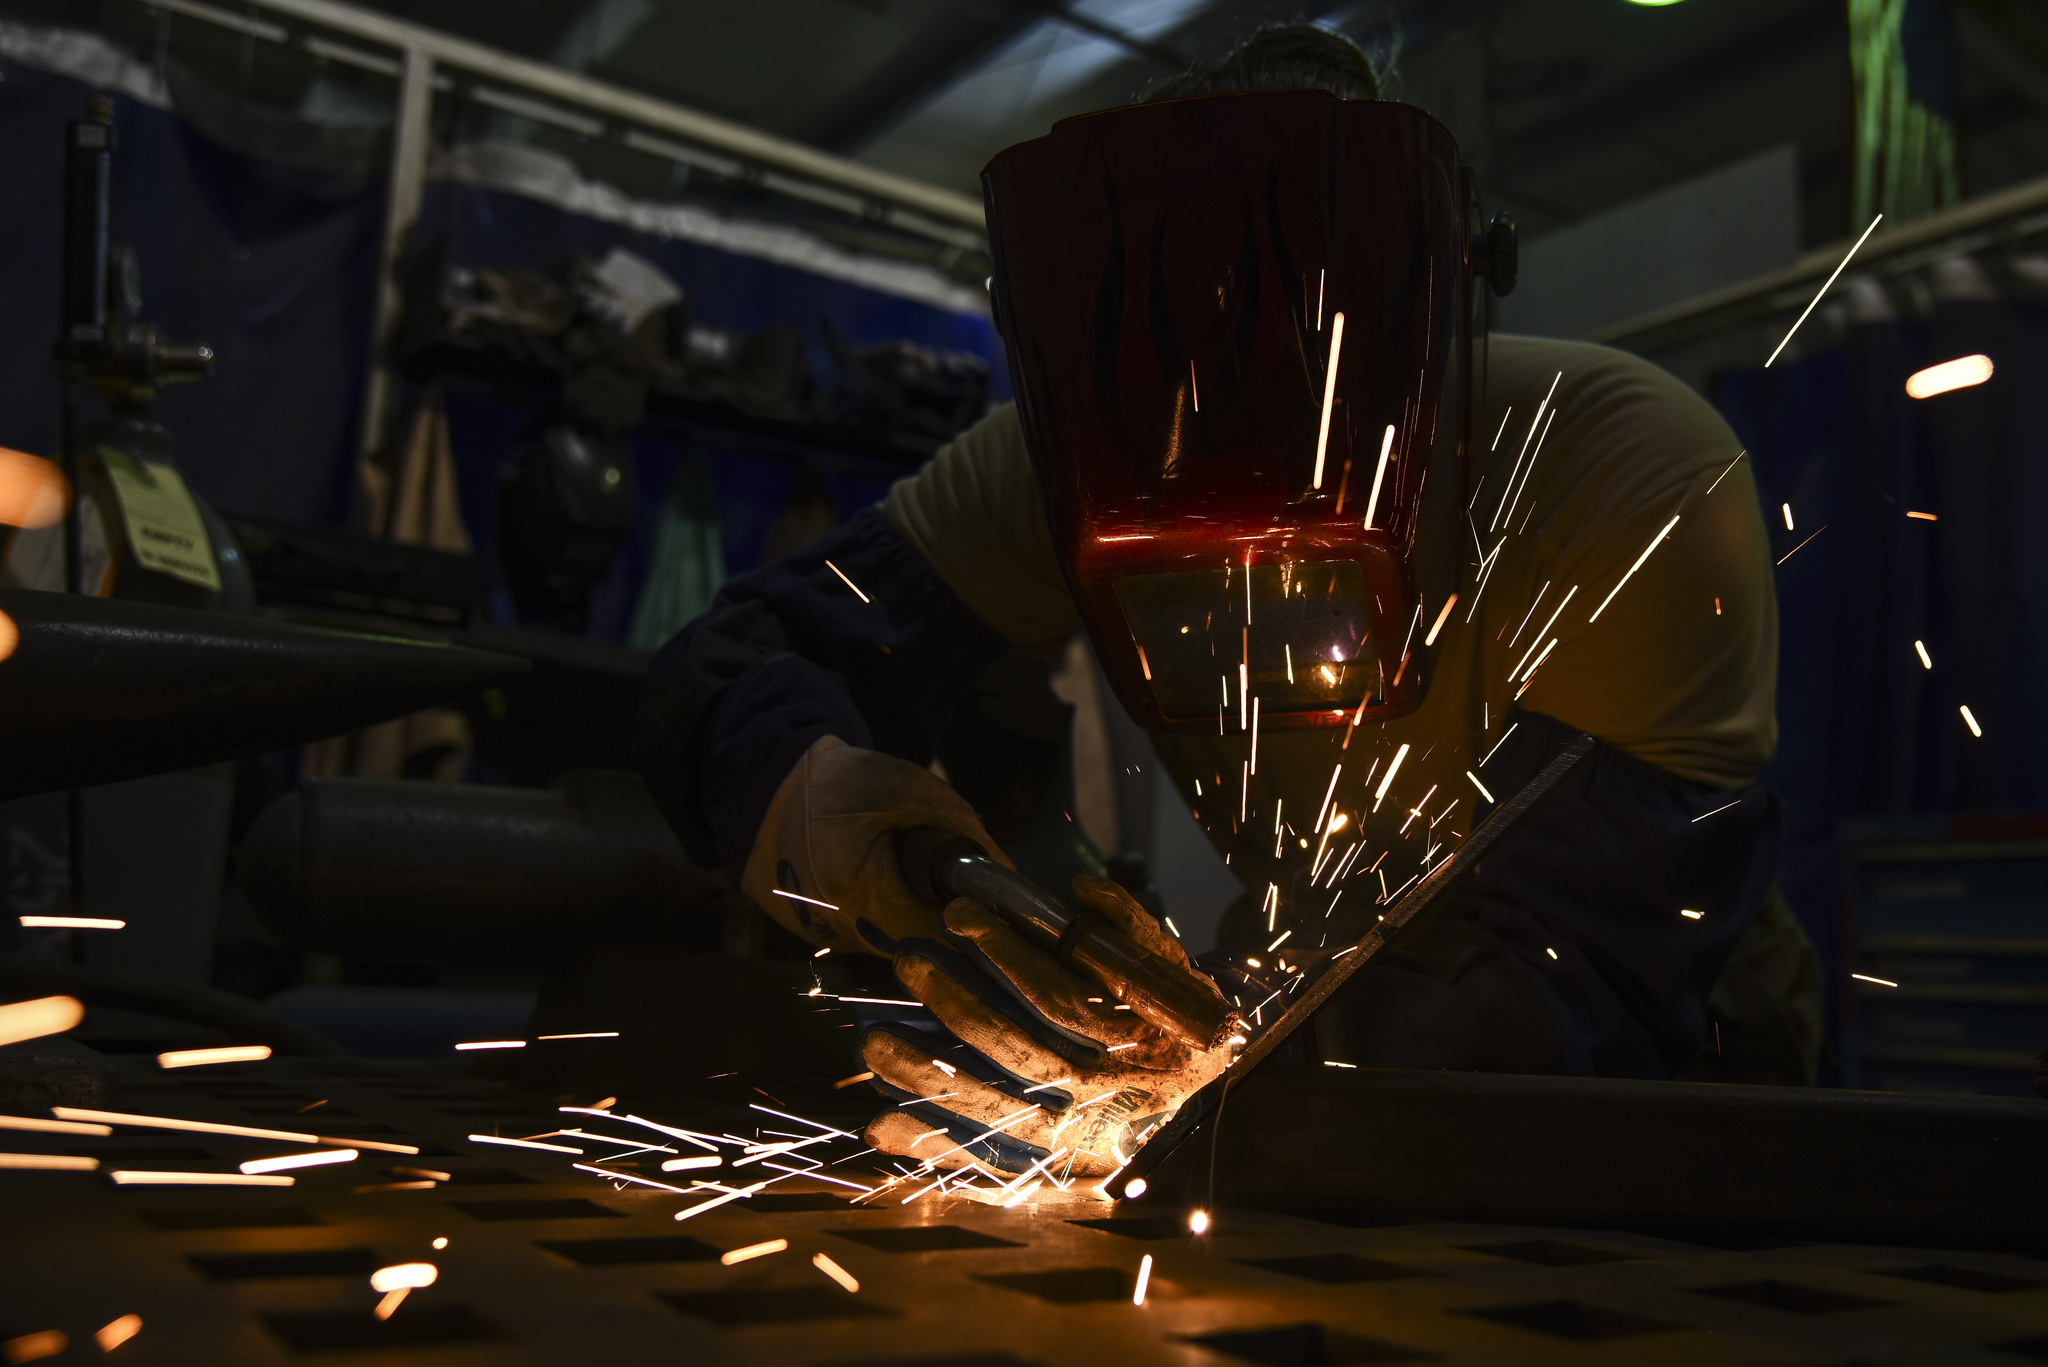 Senior Airman Courtnee Grafton, 380th Expeditionary Maintenance Squadron metal technician, welds a piece of metal at Al Dhafra Air Base, United Arab Emirates, Dec. 9, 2018. The 380th EMXS fabrication flight is in charge of identifying and repairing aircraft structural damage. (Senior Airman Mya M. Crosby/Air Force)